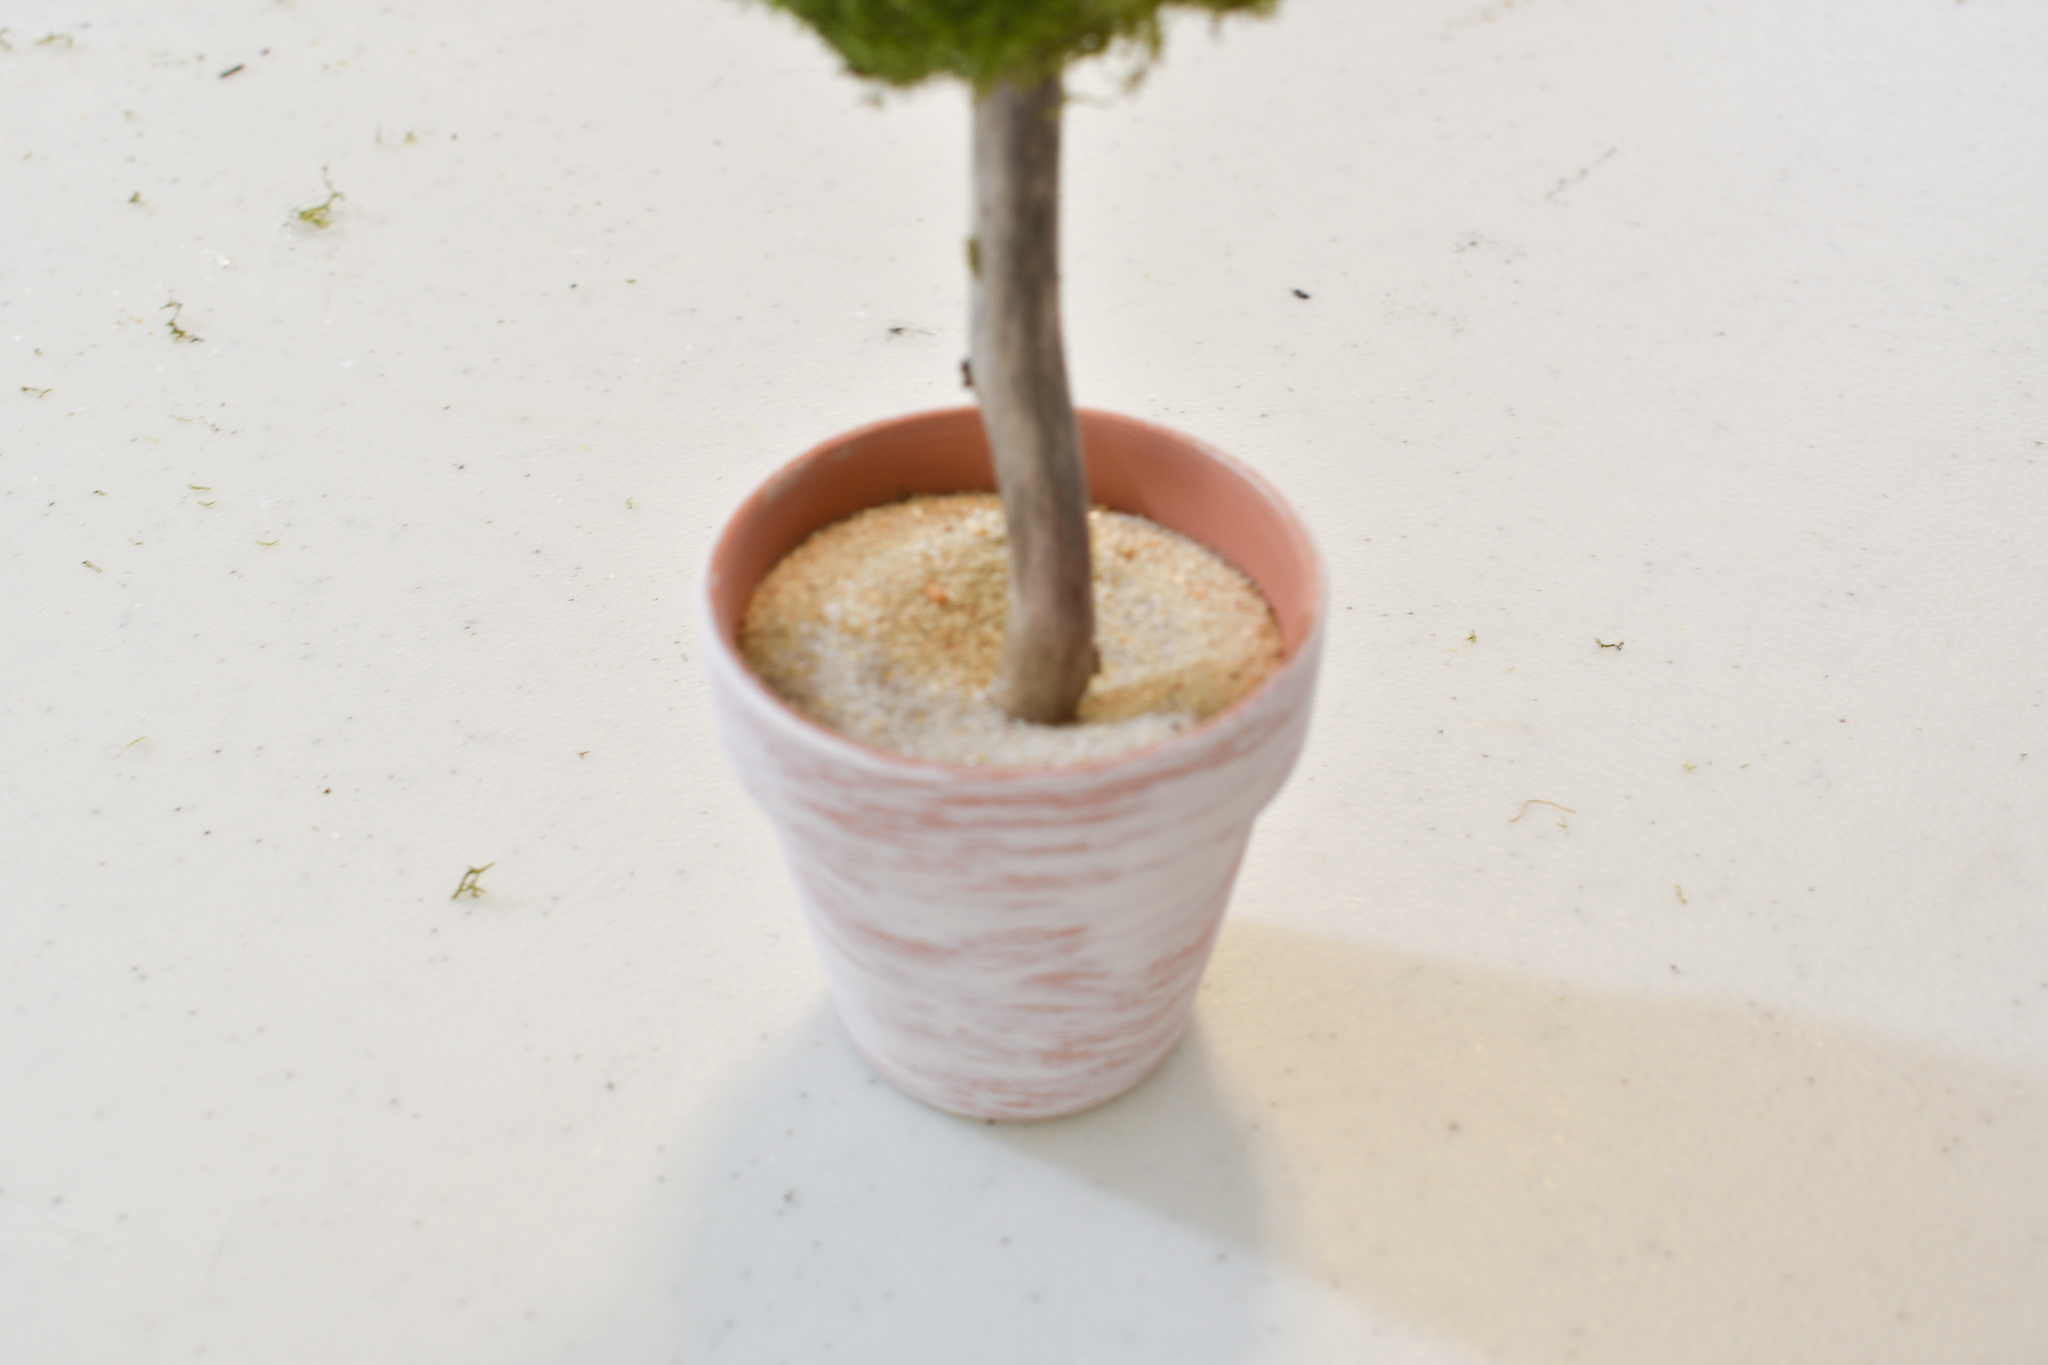 placing the twig trunk of a topiary tree into a flower pot full of sand